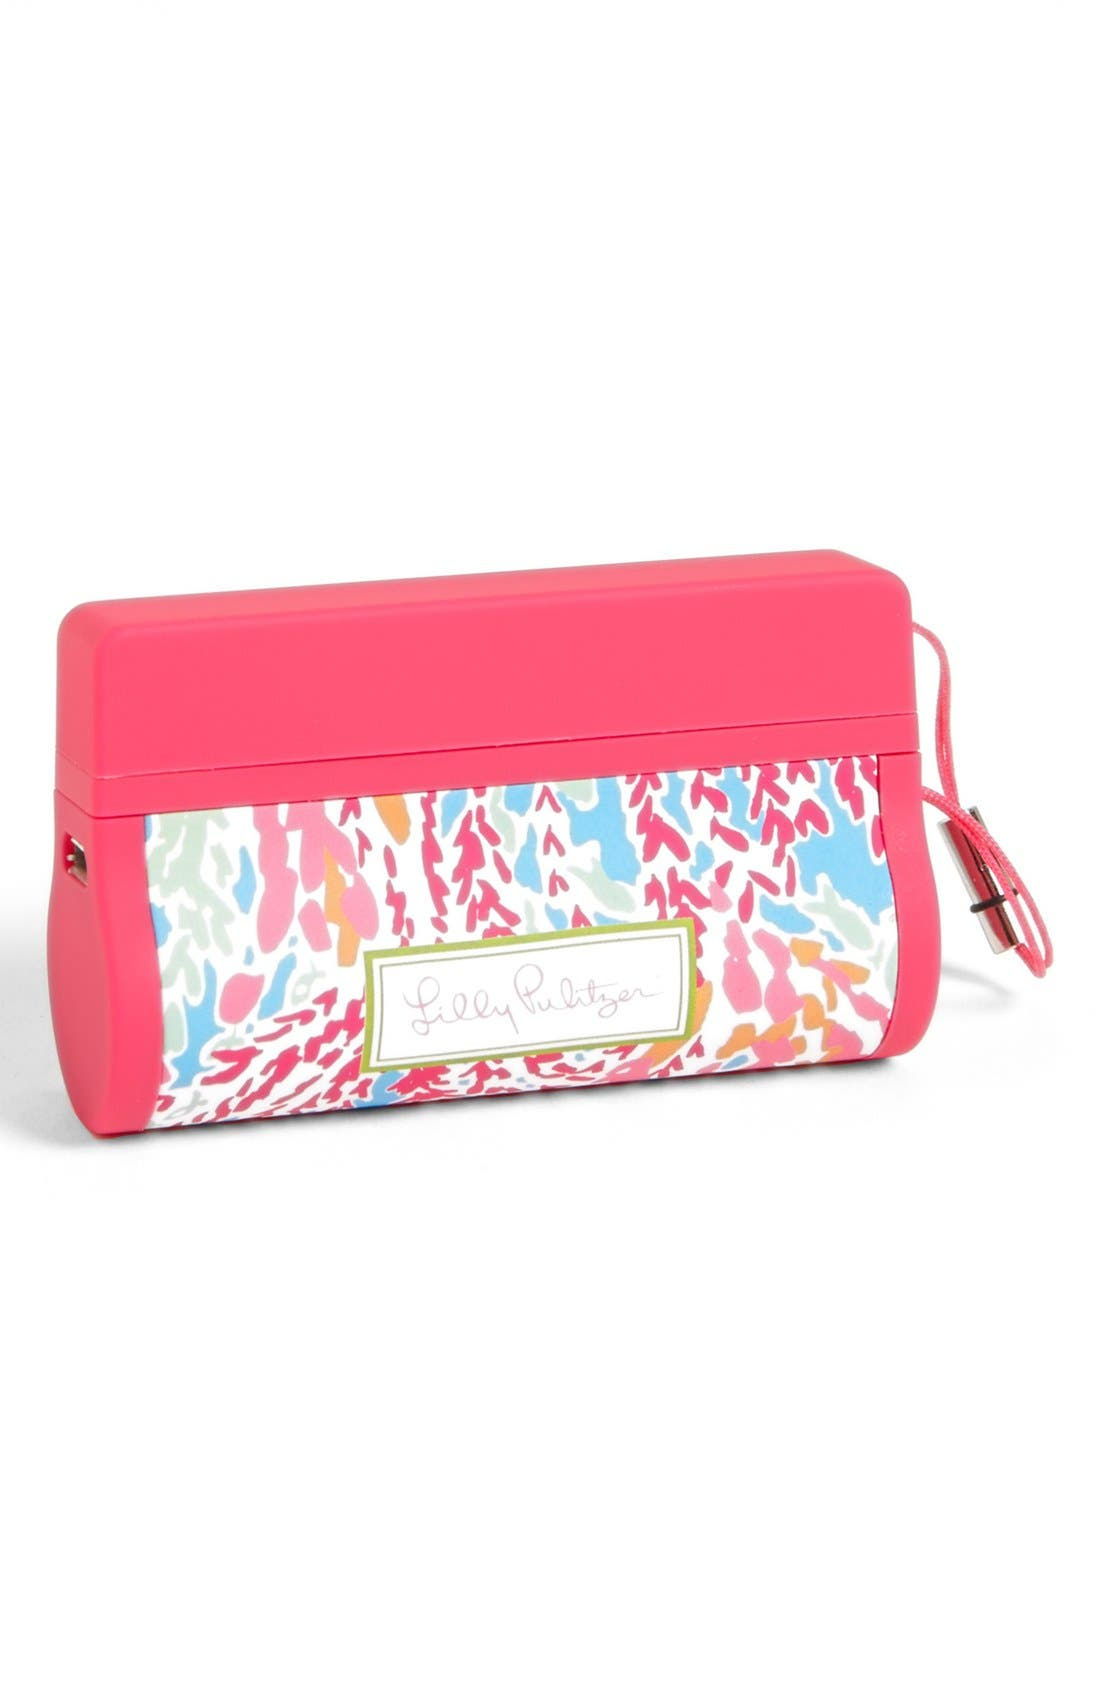 Main Image - Lilly Pulitzer® 'Let's Cha Cha' iPhone 5 Mobile Charger